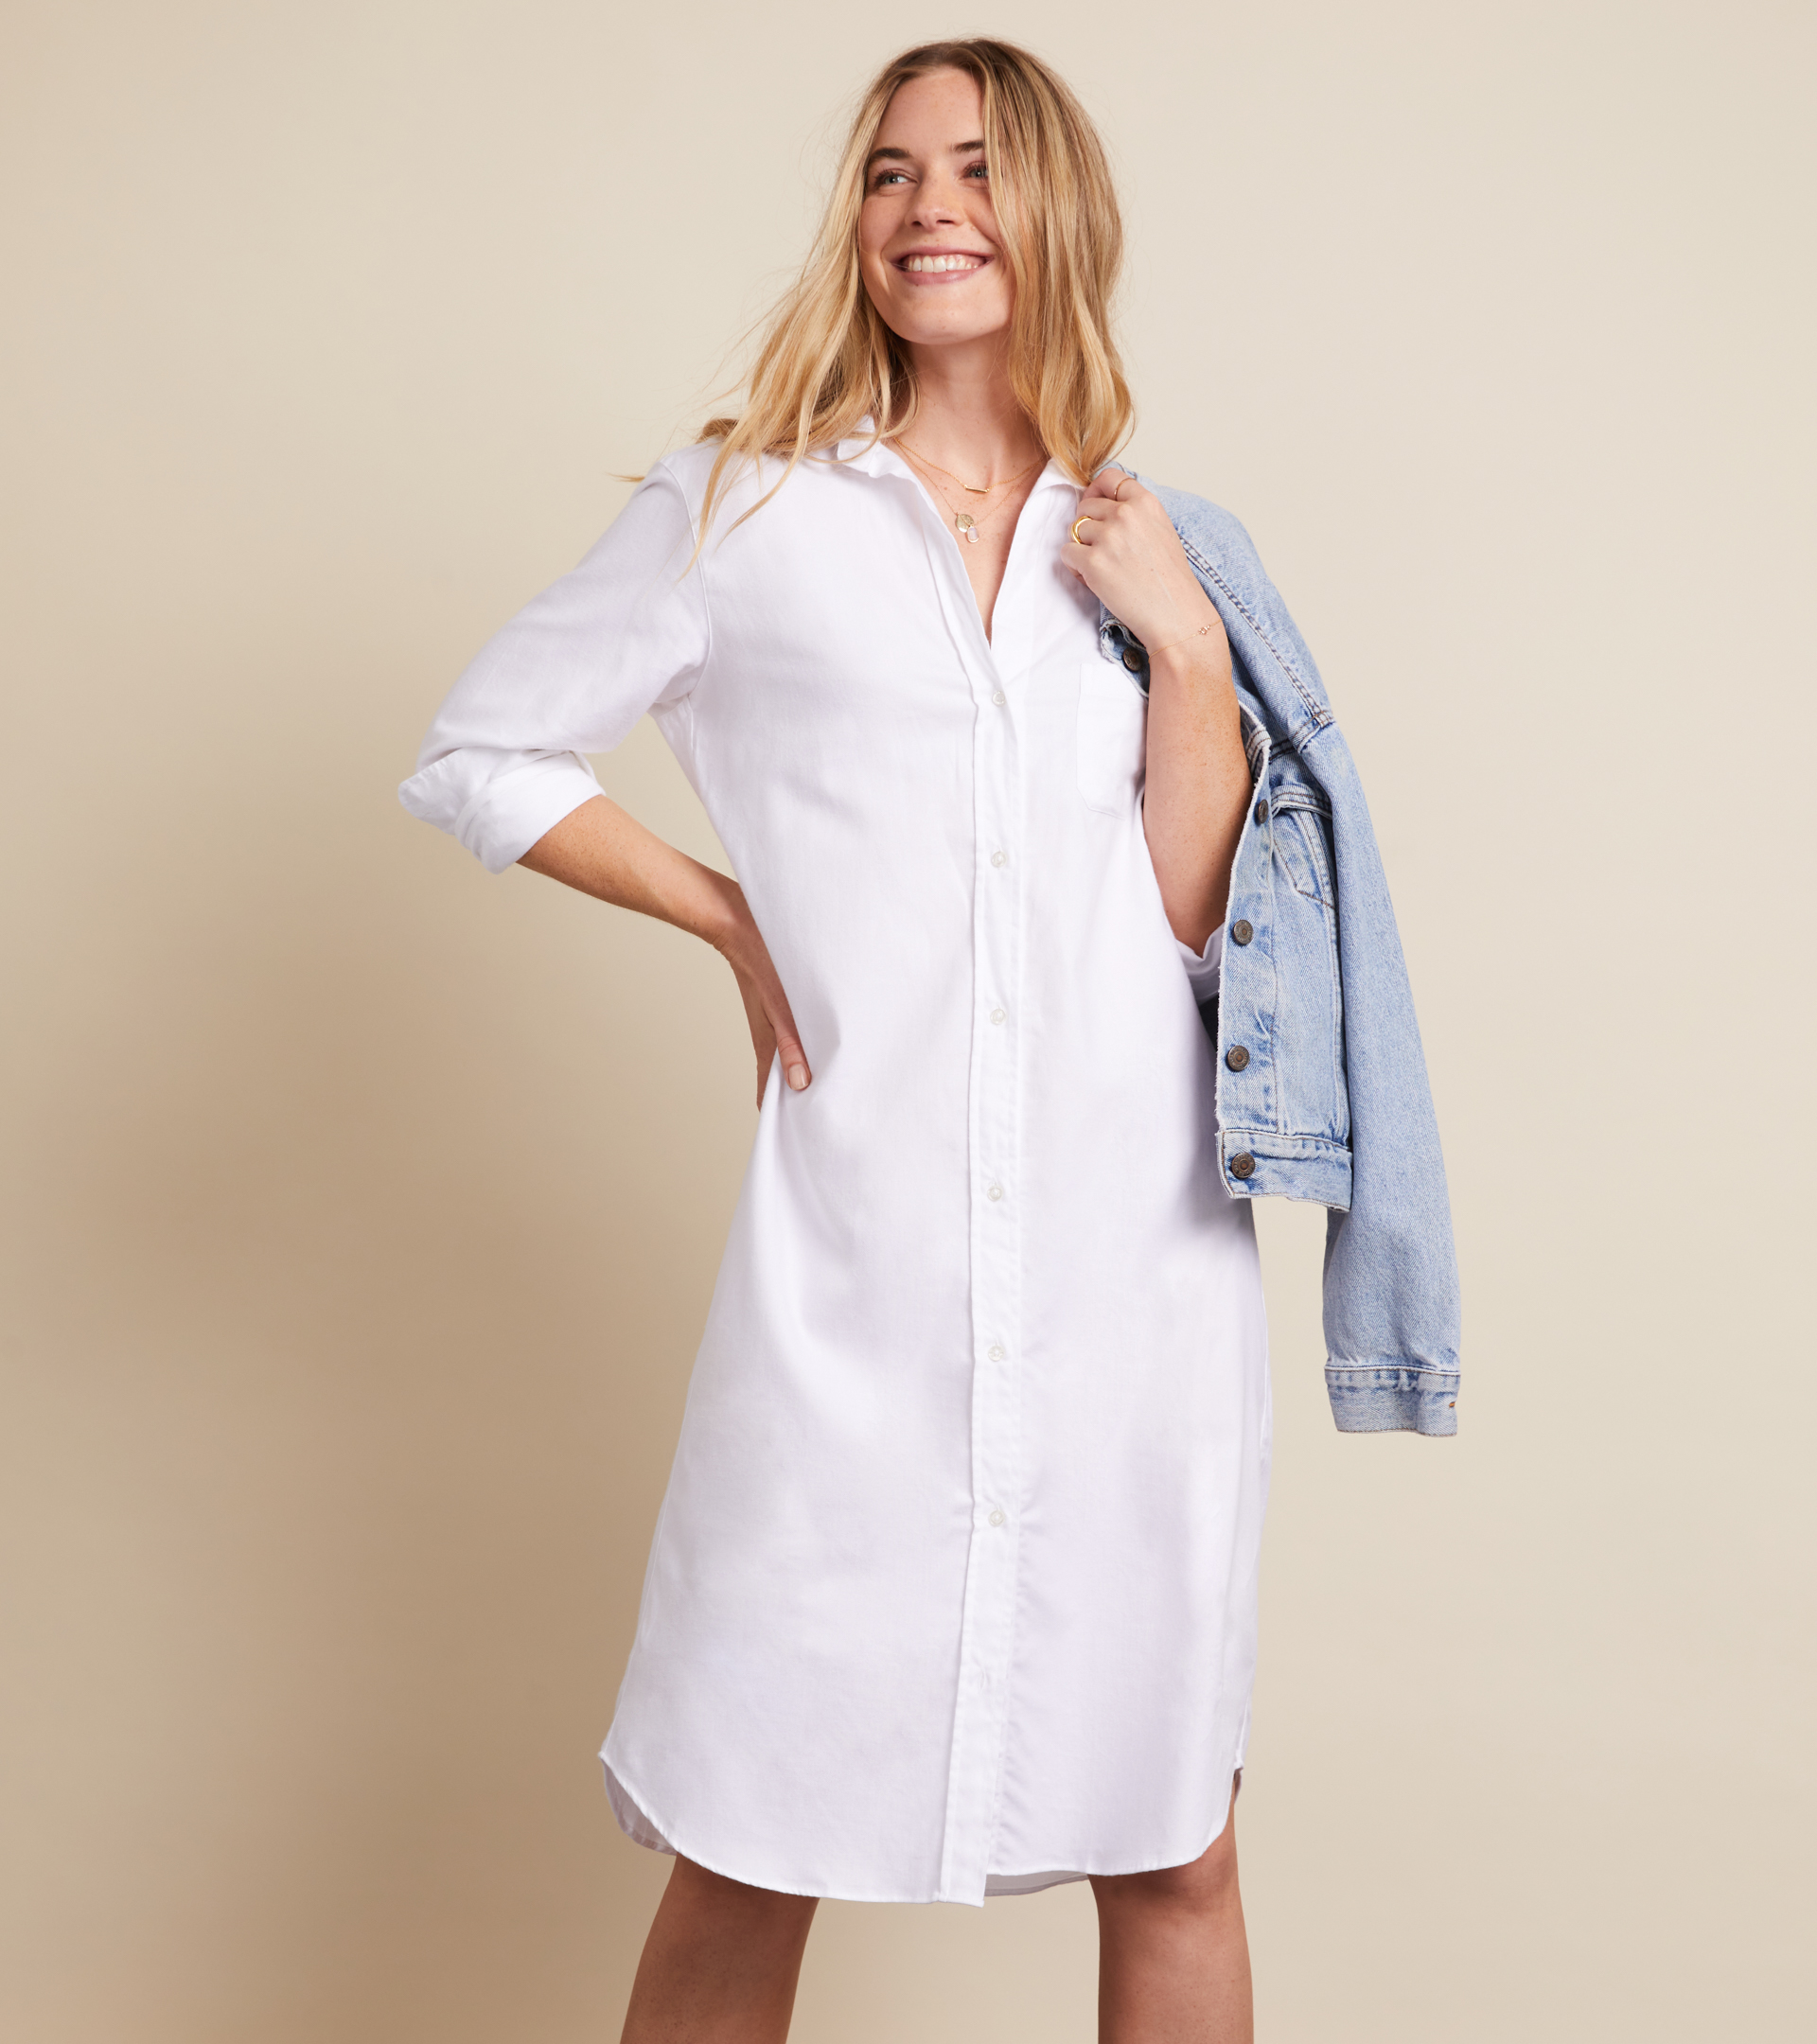 Image of The Hero Midi Dress White, Feathered Flannel